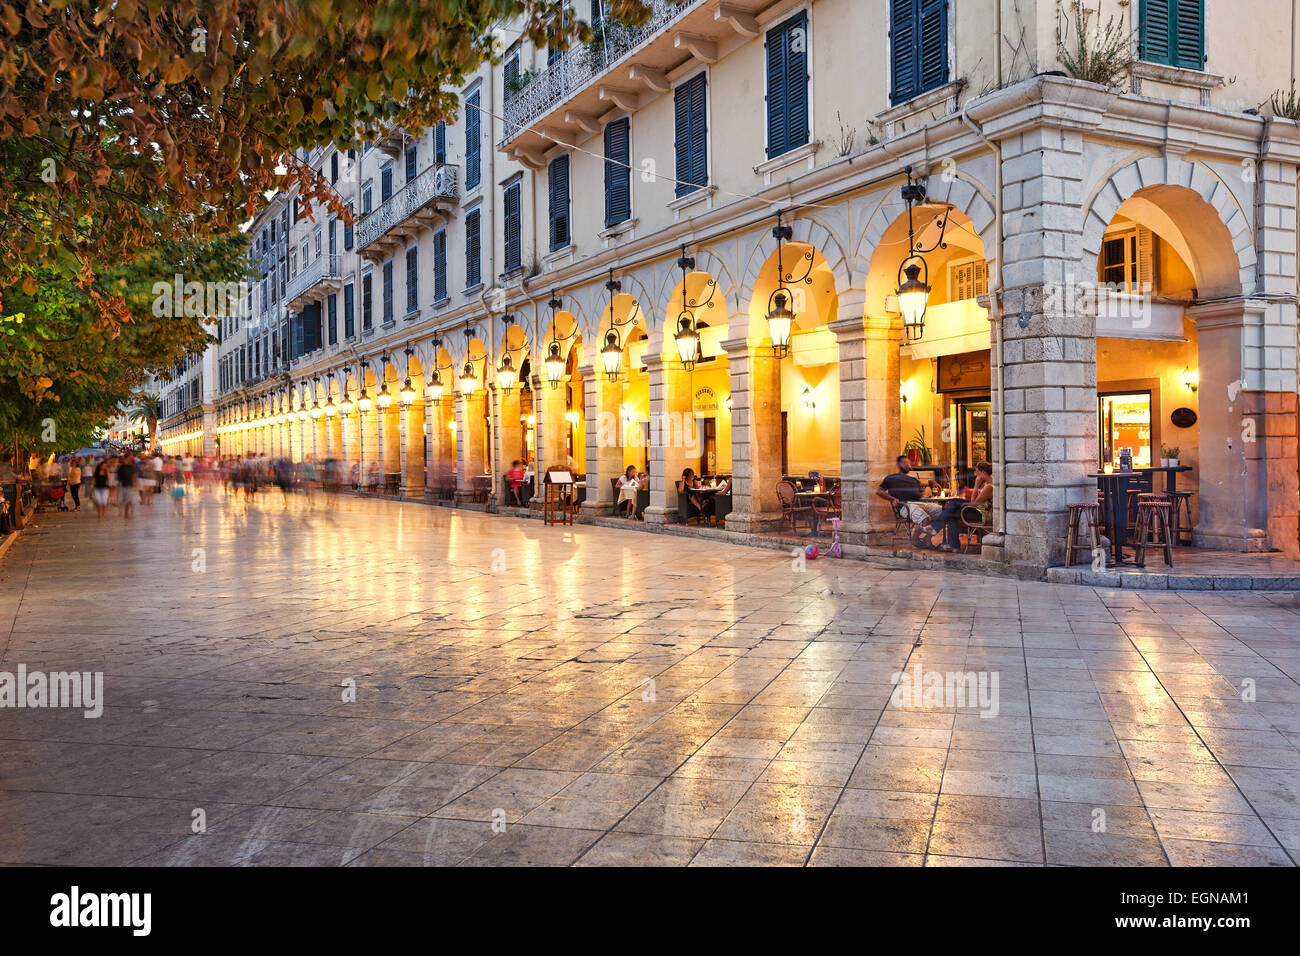 Liston square in the town of Corfu, Greece - Stock Image